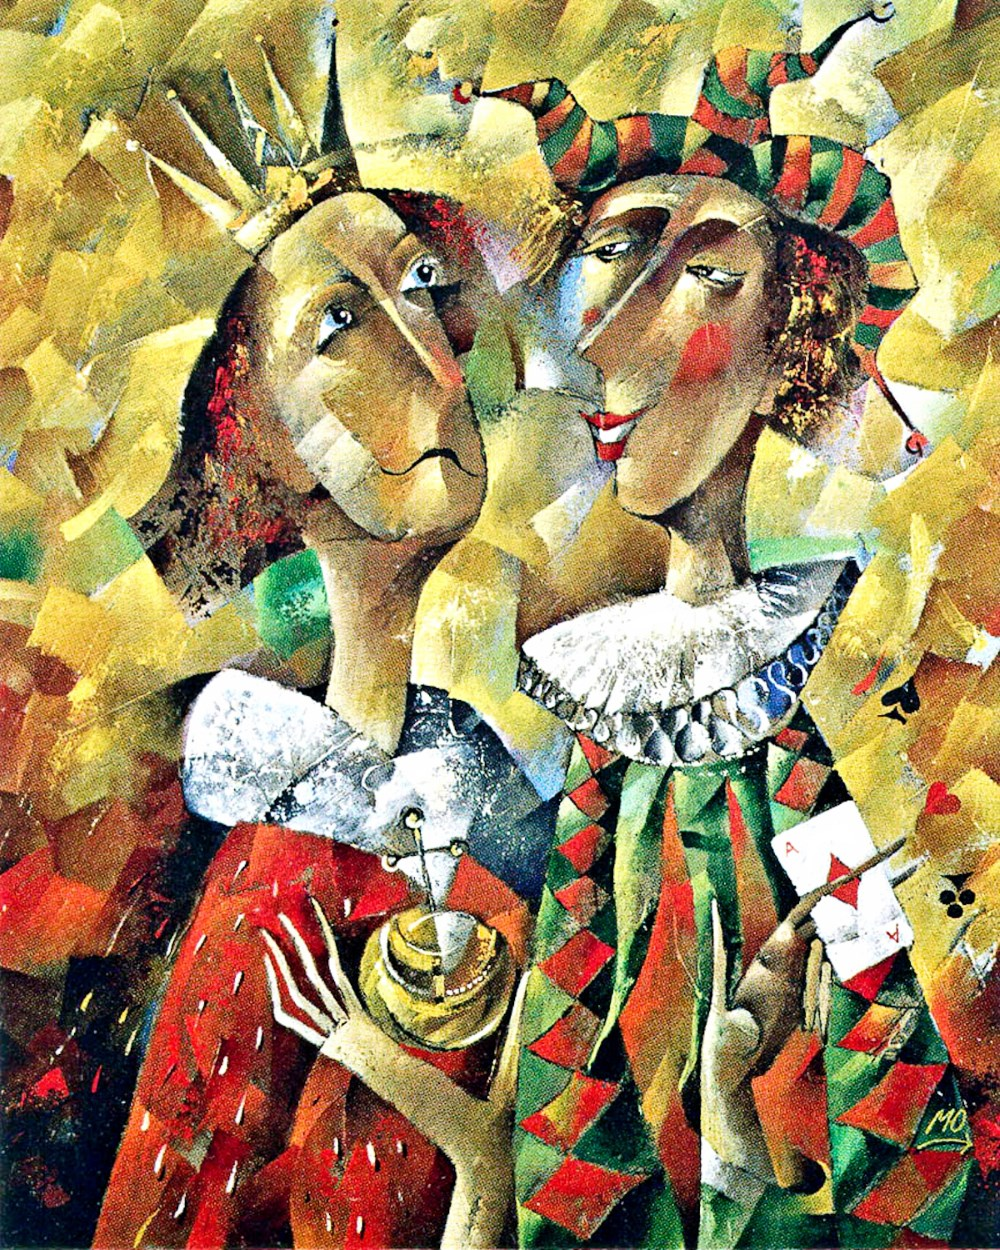 00 Yuri Matsik. The King and the Jester. 2005